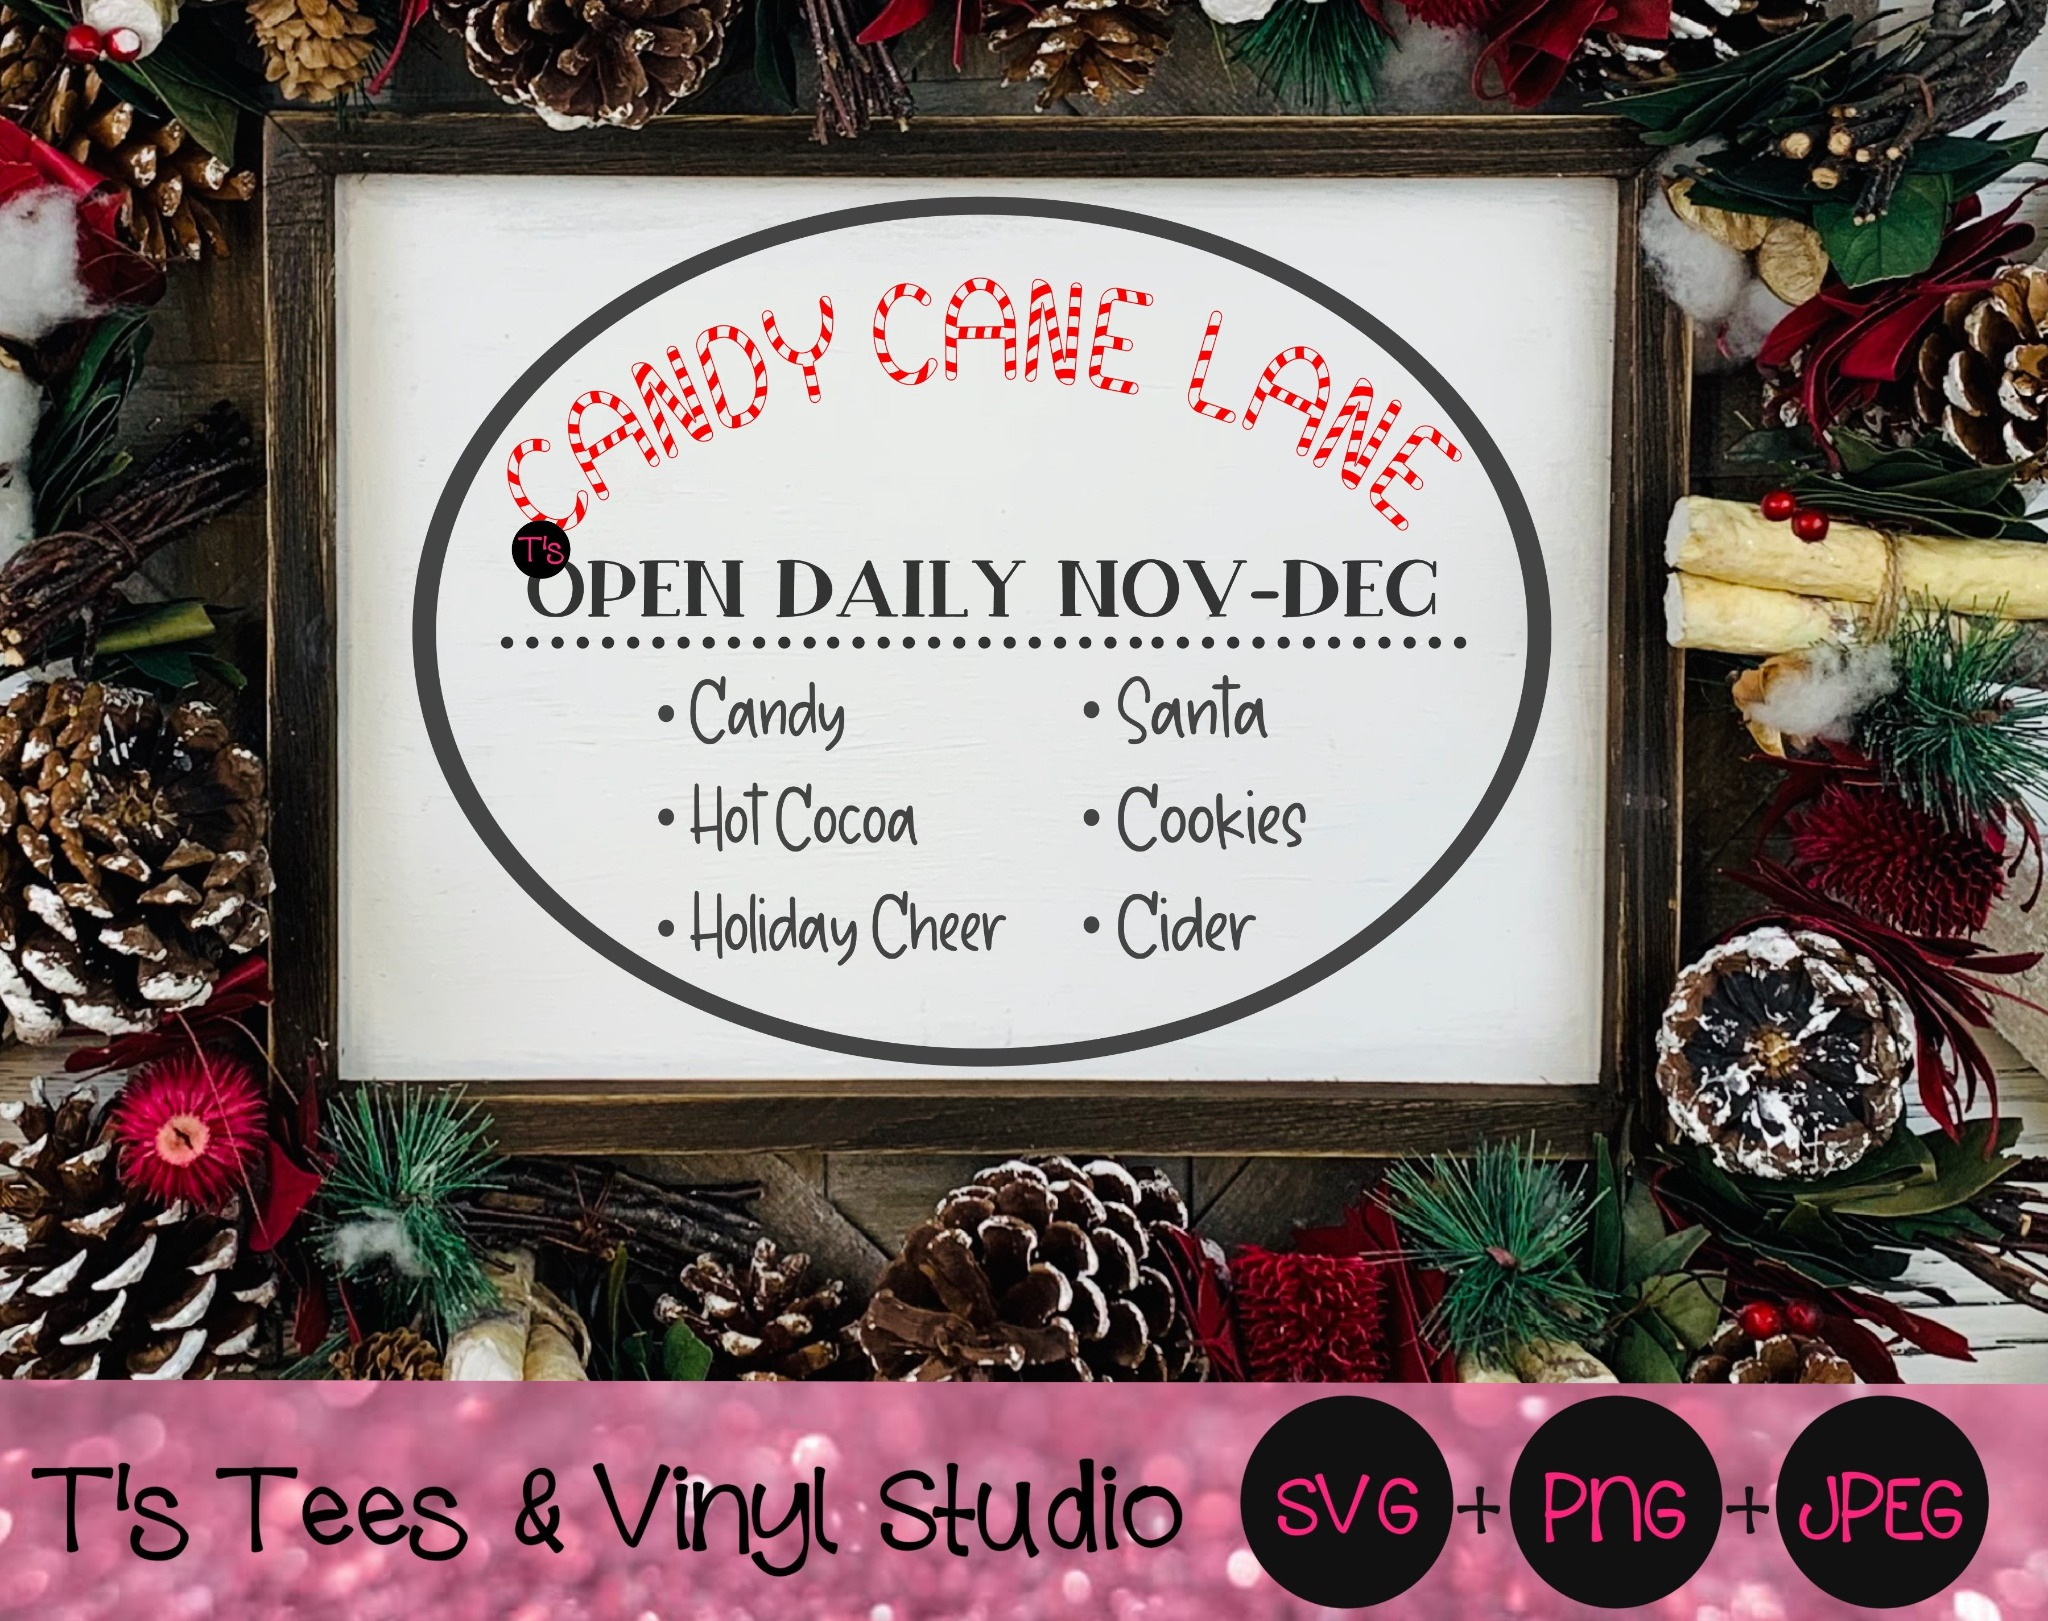 Christmas Sign Svg, Candy Cane Lane, Candy Canes, Santa, Hot Cocoa, Cider, Cookies, Holiday Cheer, O